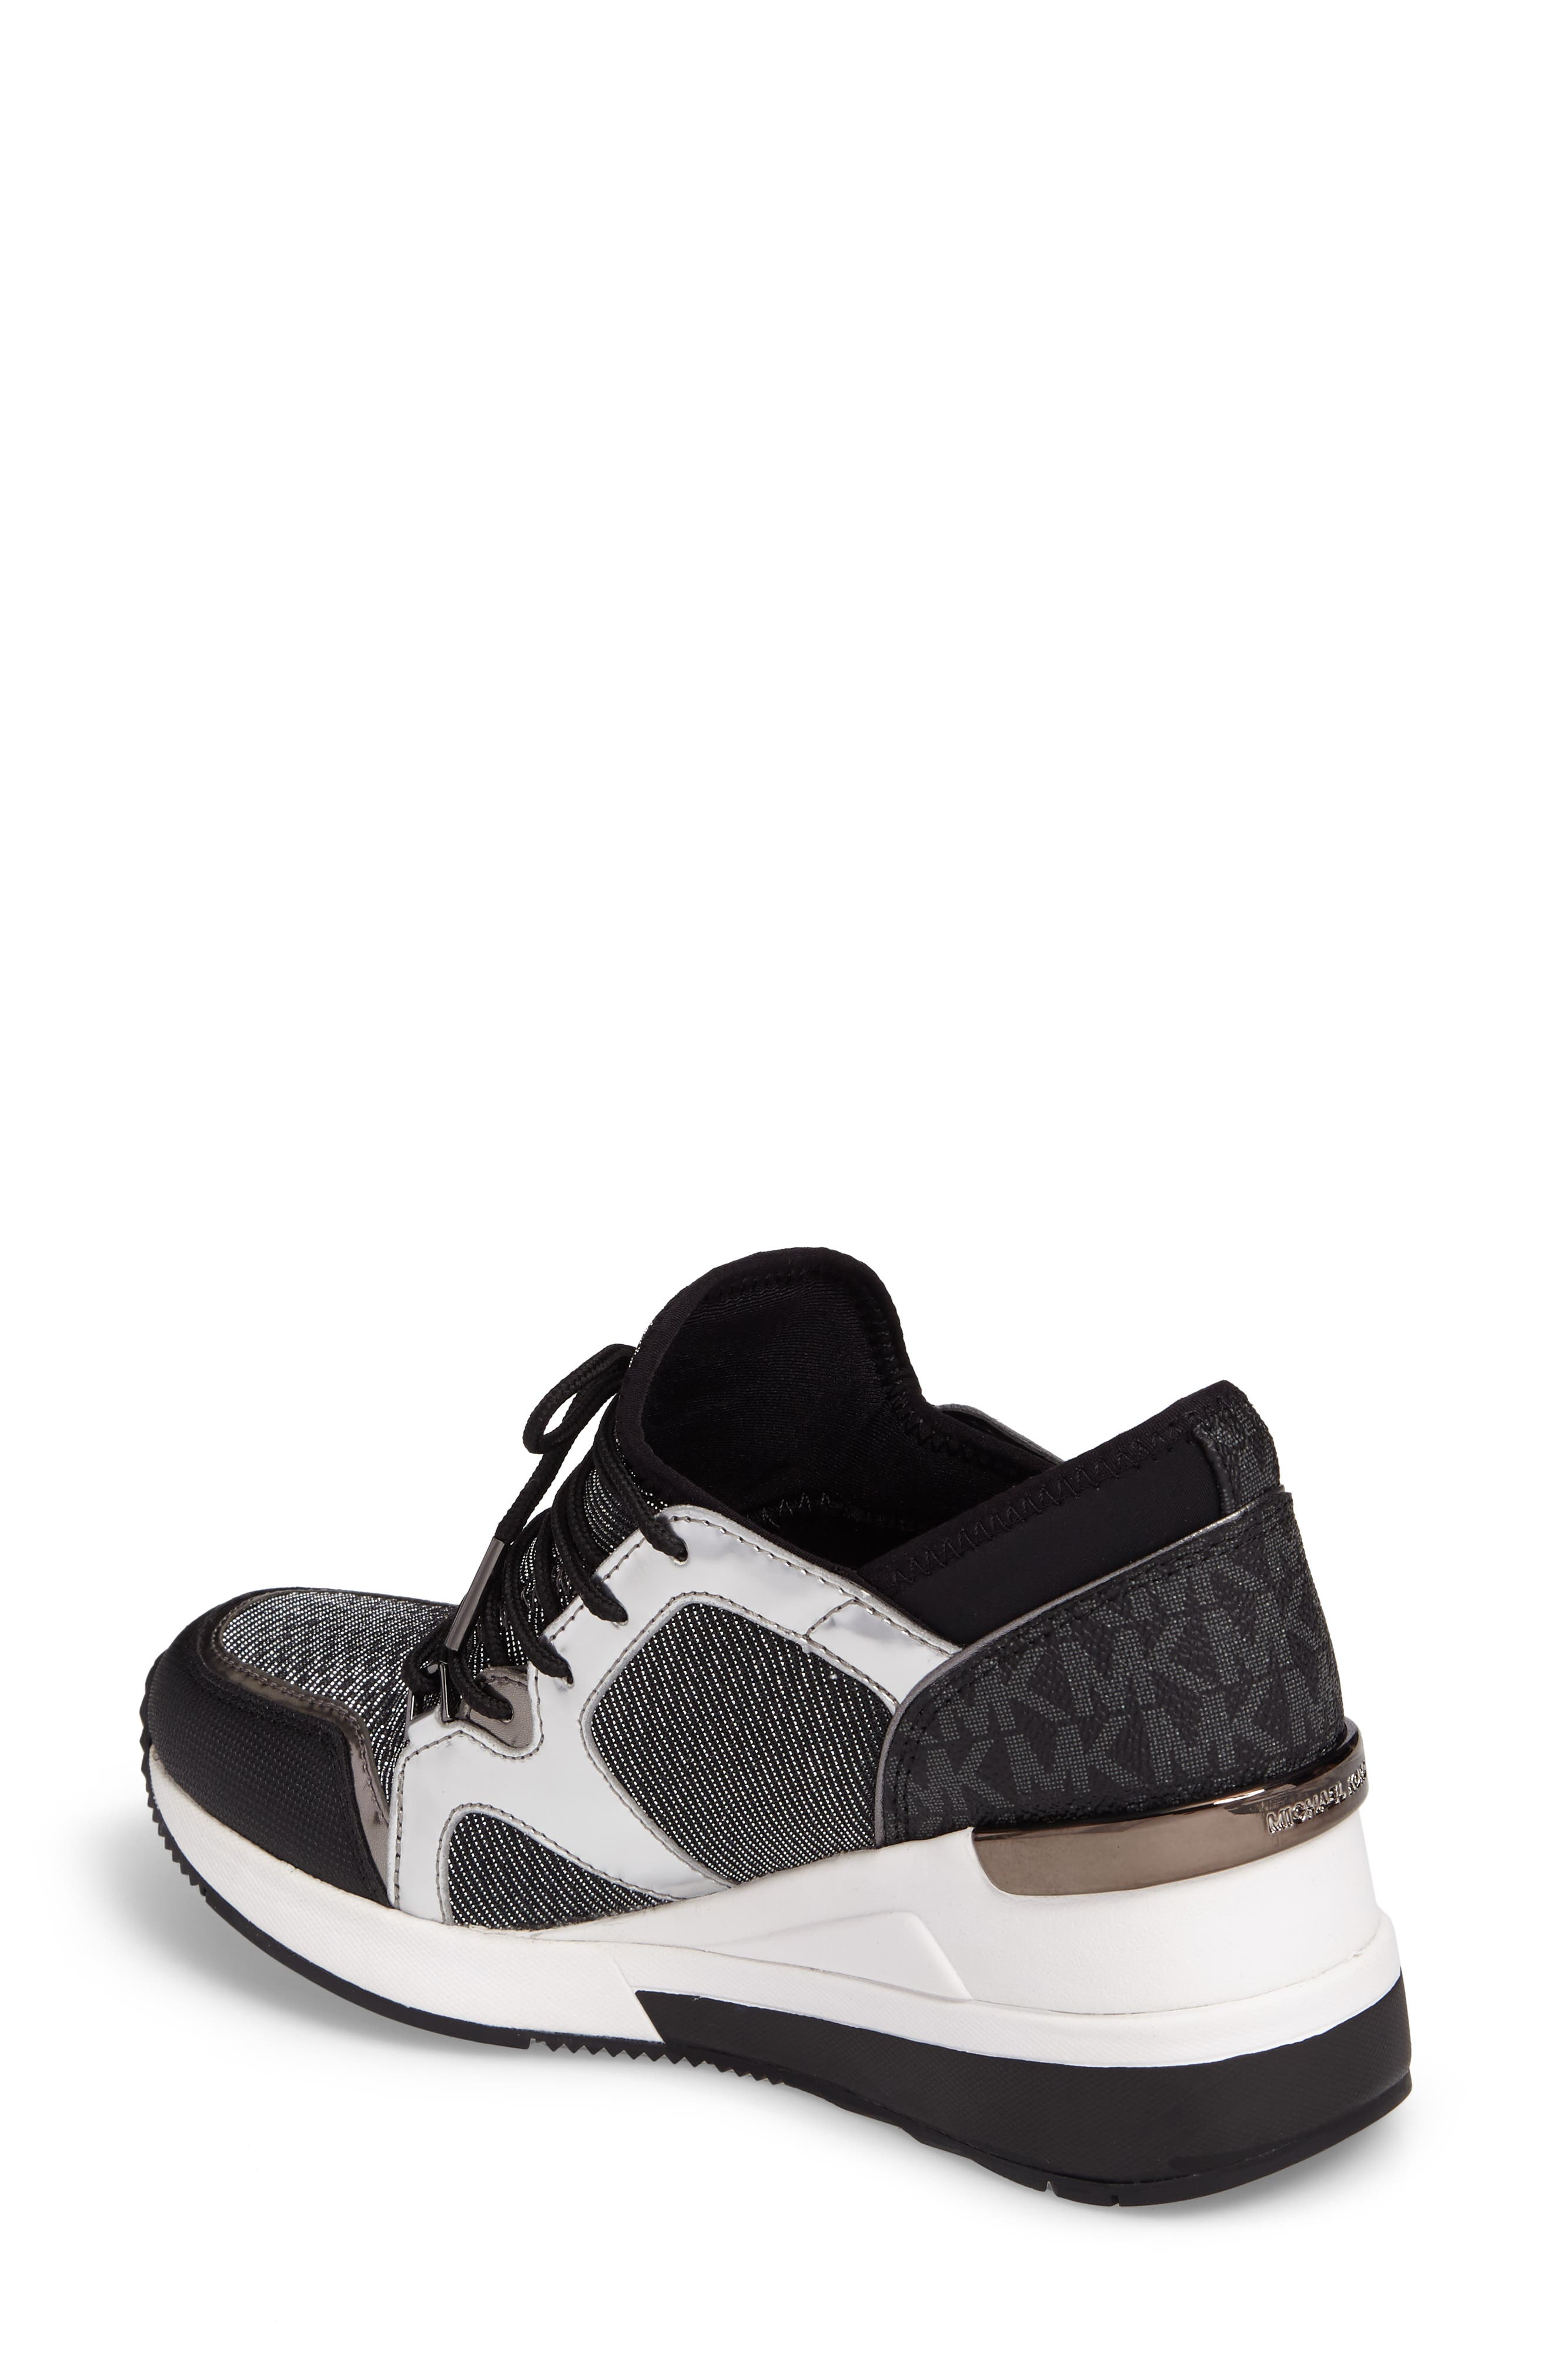 Scout Wedge Sneaker,                             Alternate thumbnail 2, color,                             041